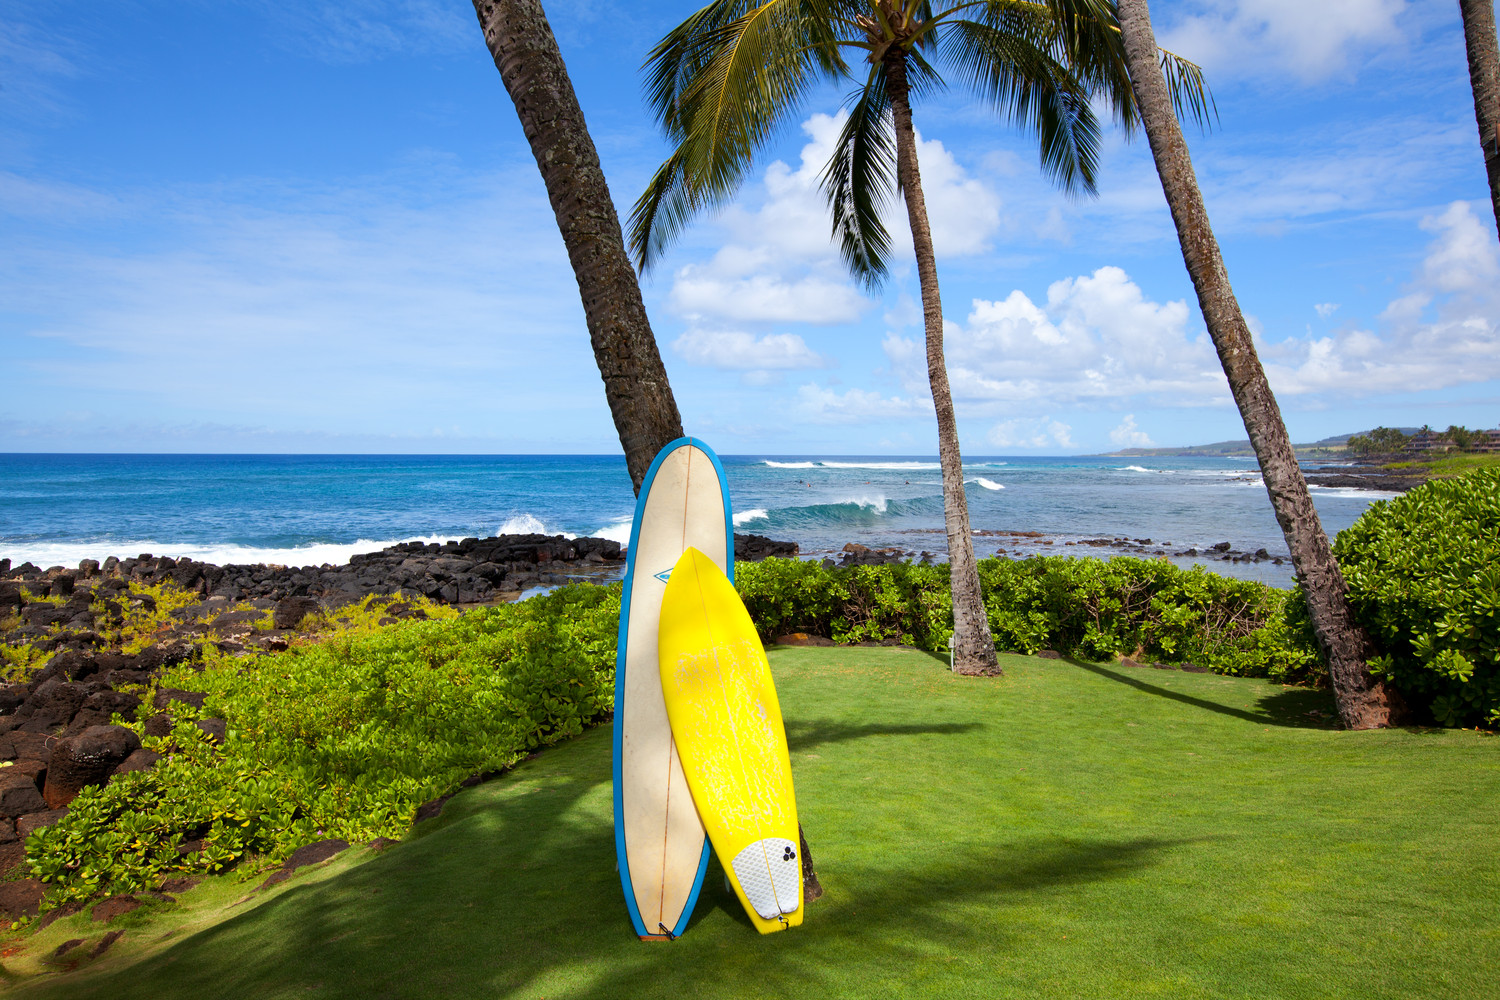 Surf boards and stand up paddle boards SUP paddleboards on lawn of Sheraton Kauai Resort